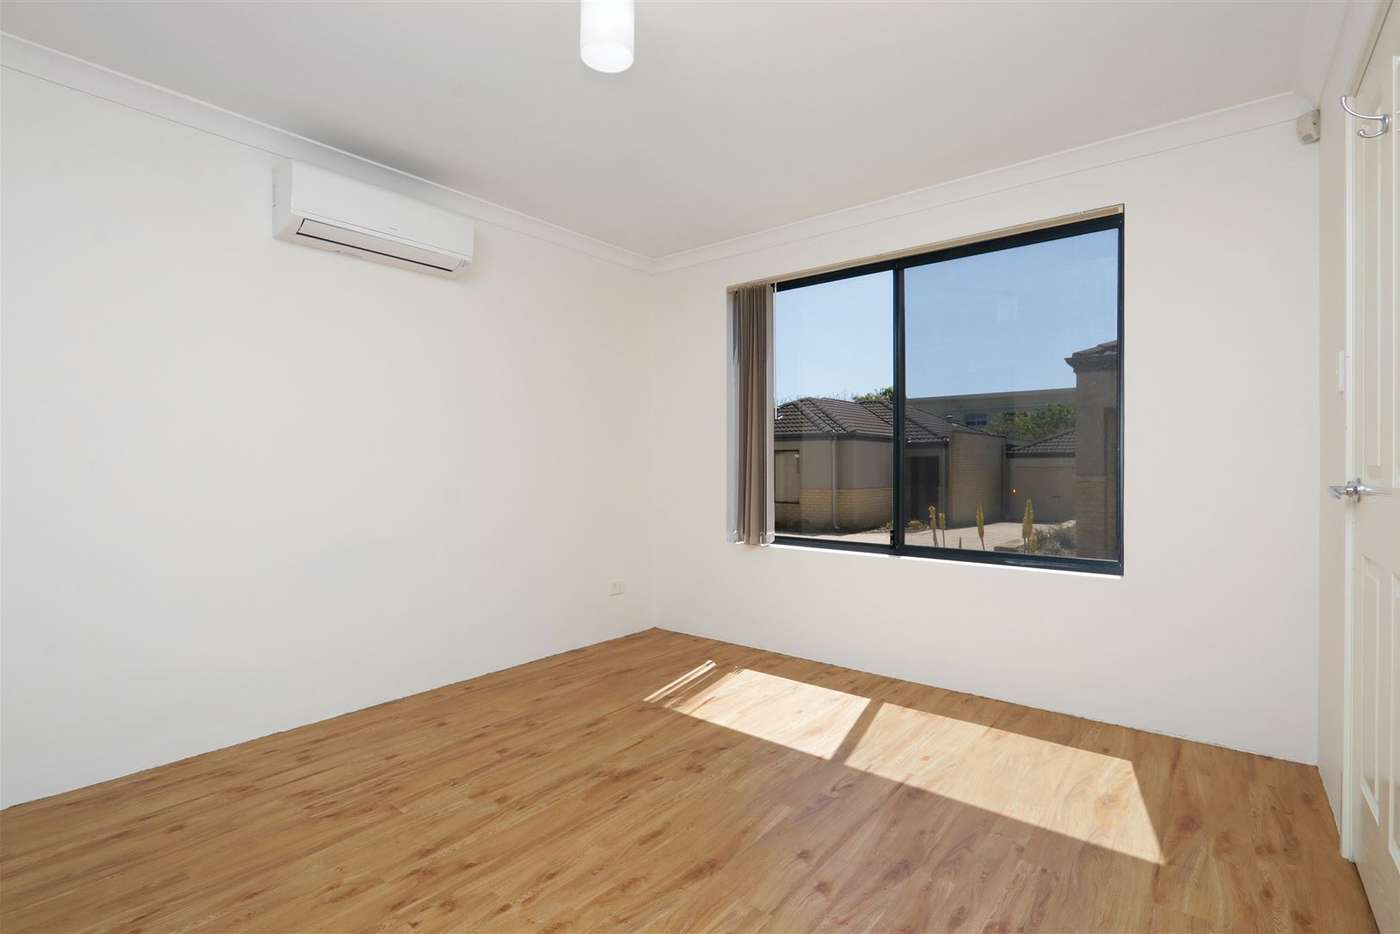 Seventh view of Homely unit listing, 5/74 Gilbertson Road, Kardinya WA 6163